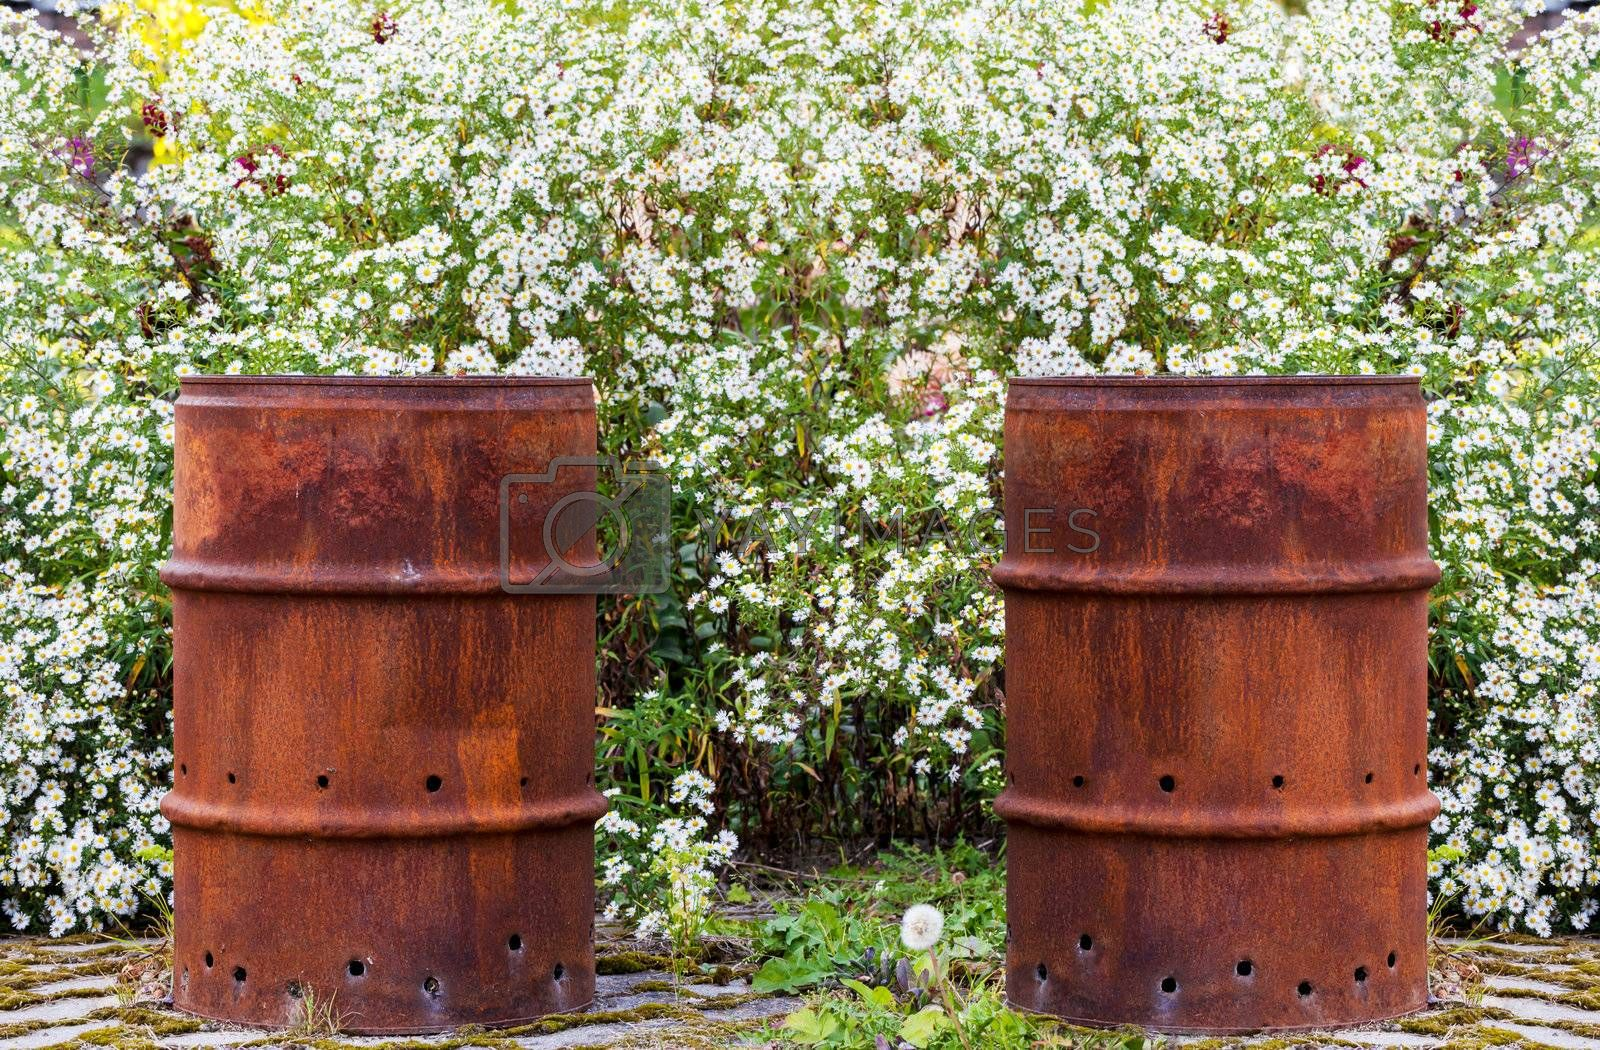 This image shows two rusty barrel in a flowerbed